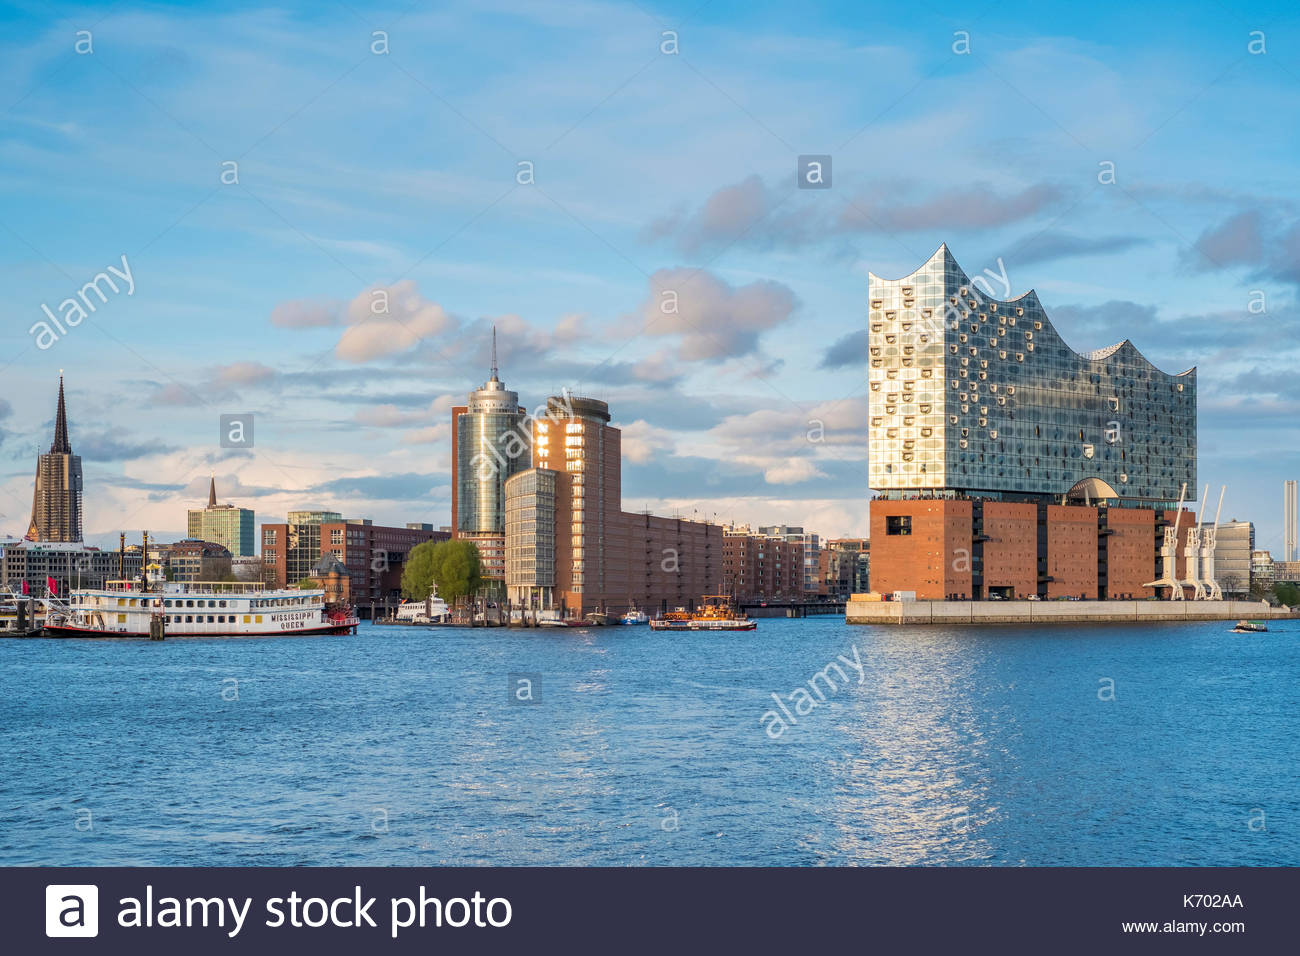 Germany, Hamburg. Elbphilharmonie (Elbe Philharmonic Hall) concert hall on the Elbe River and buildings in the HafenCity. Stock Photo